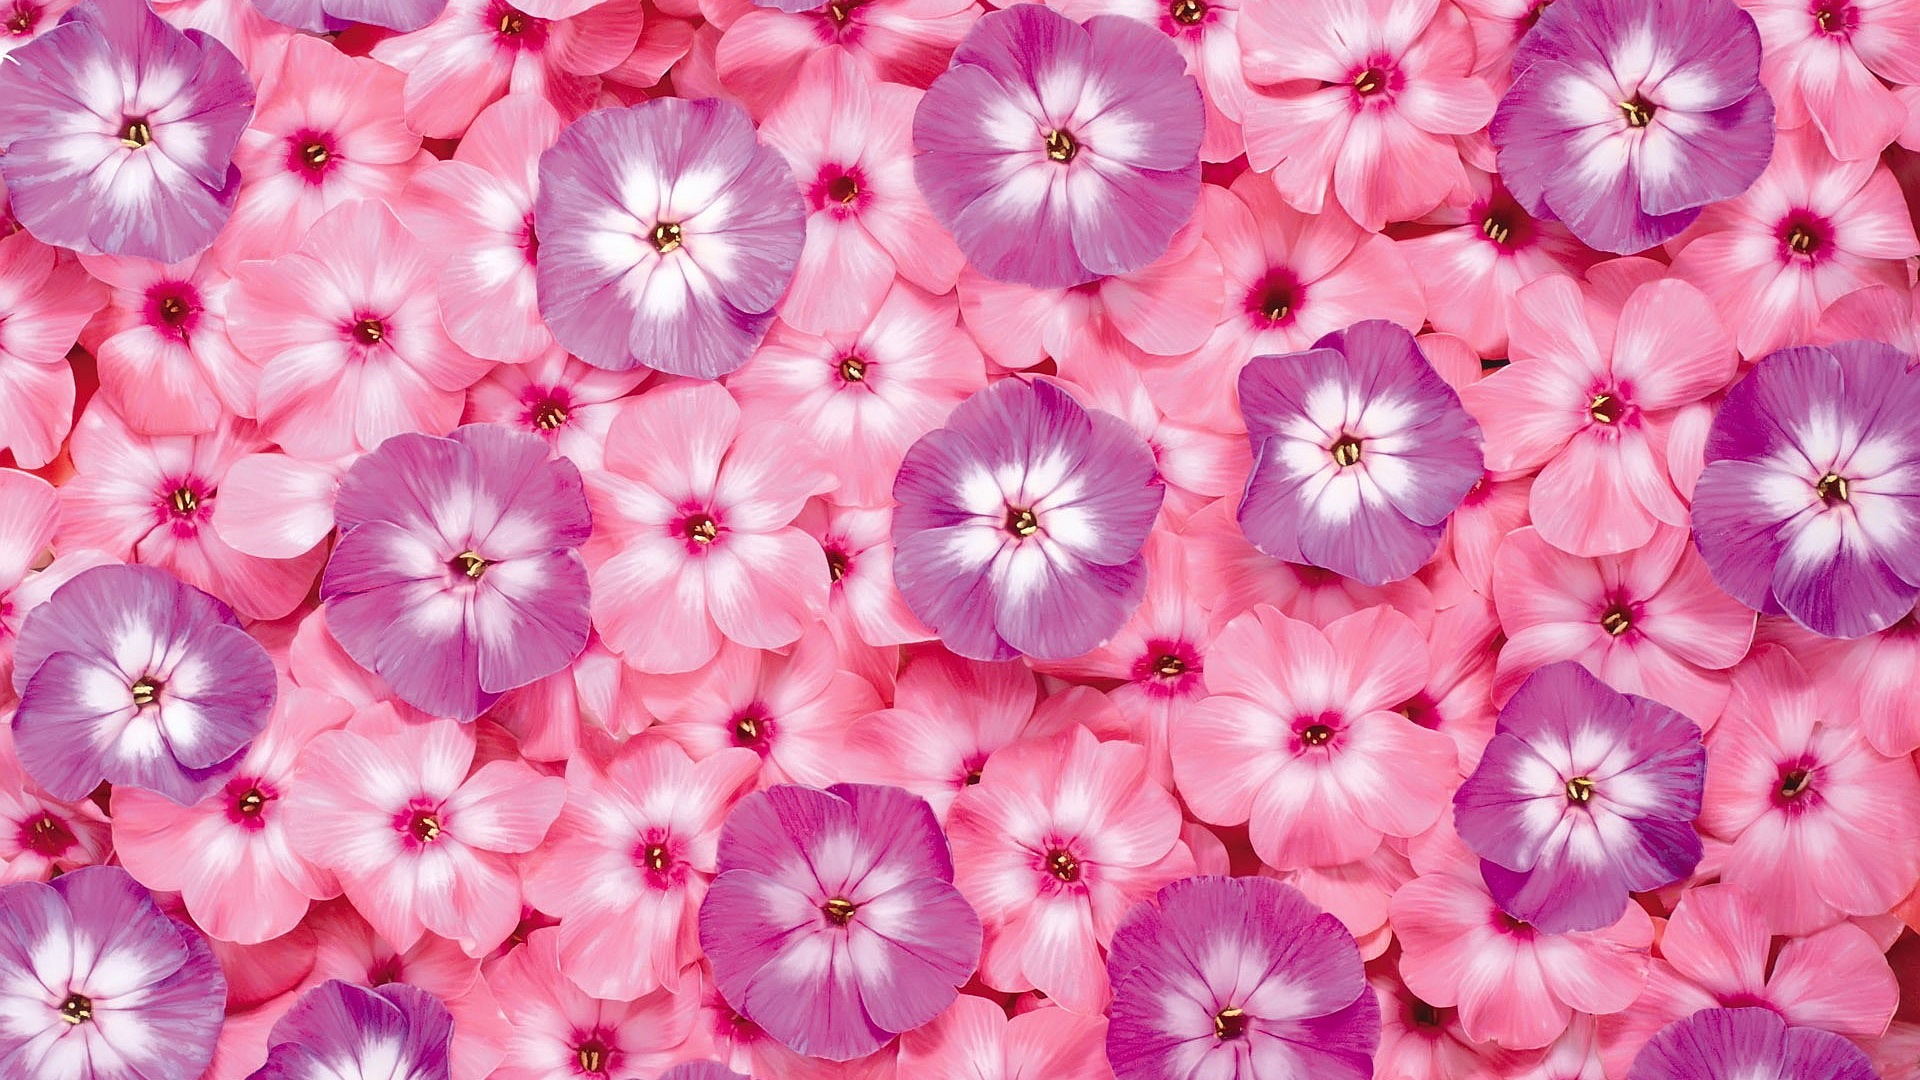 flowers wallpaper free download for android